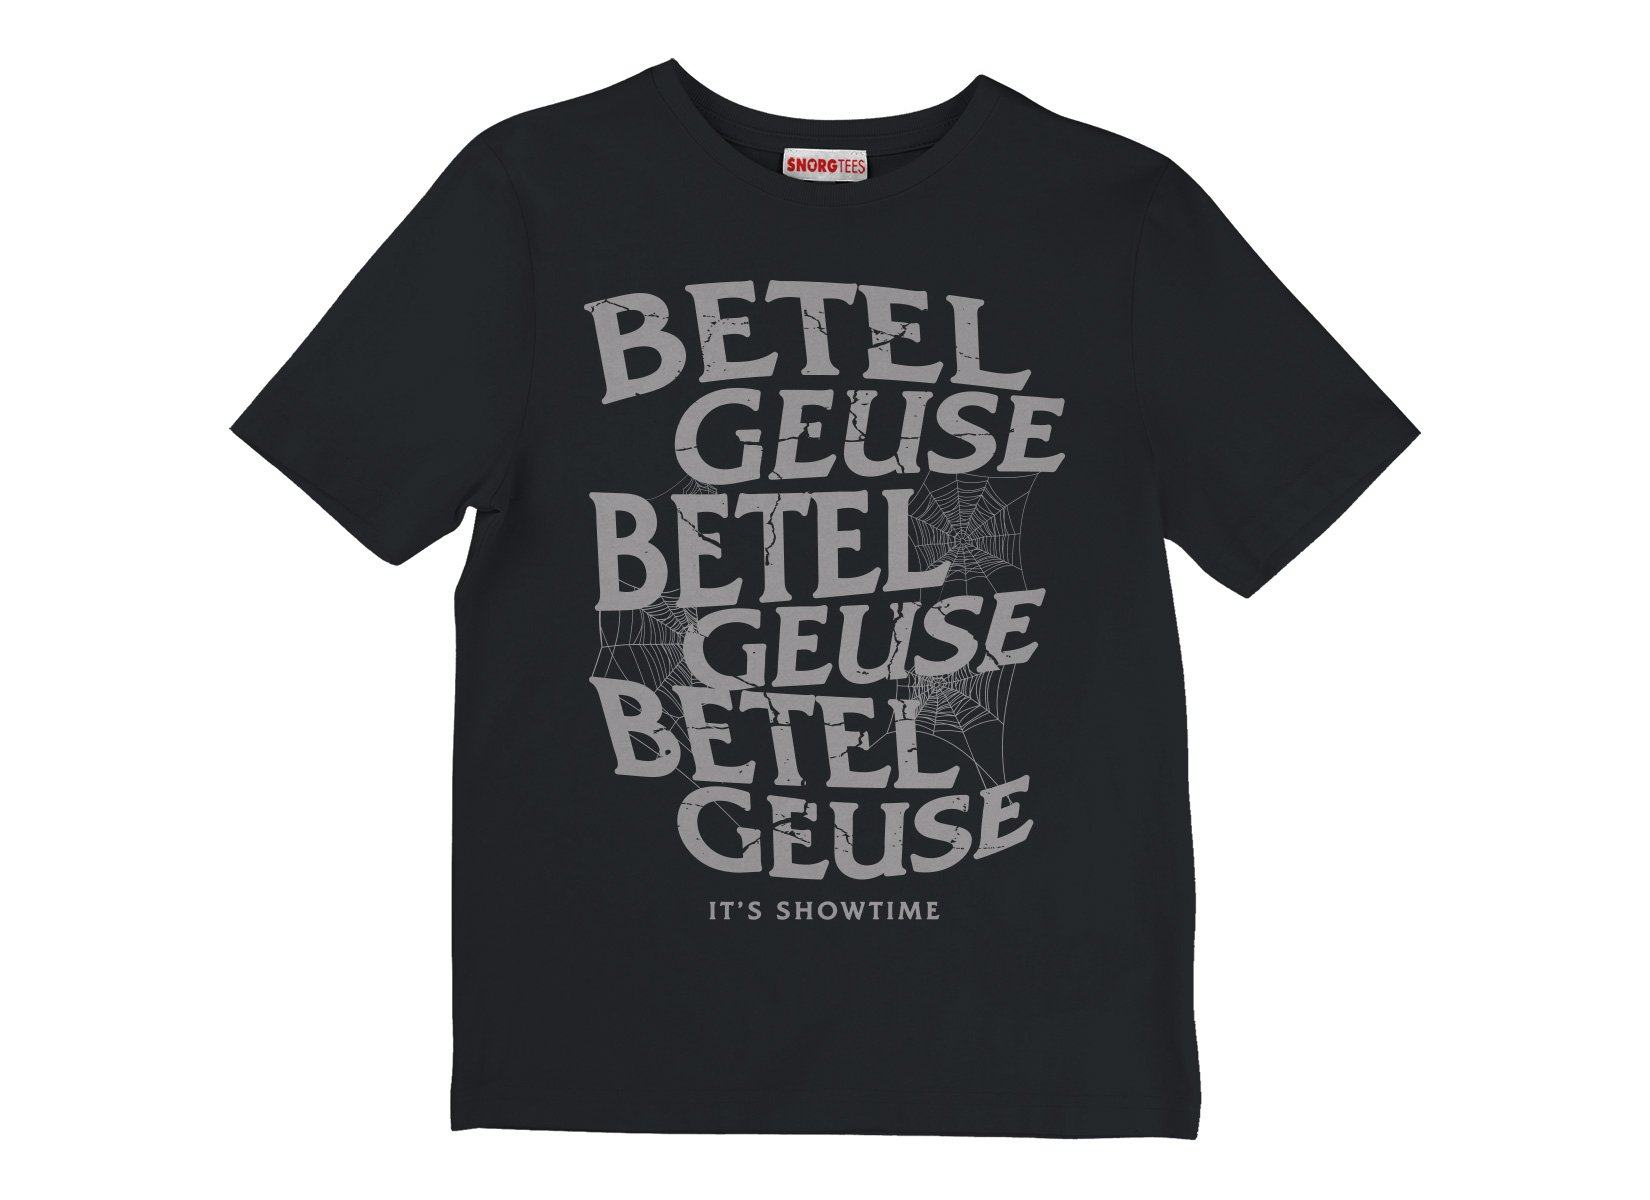 Betelgeuse on Kids T-Shirt